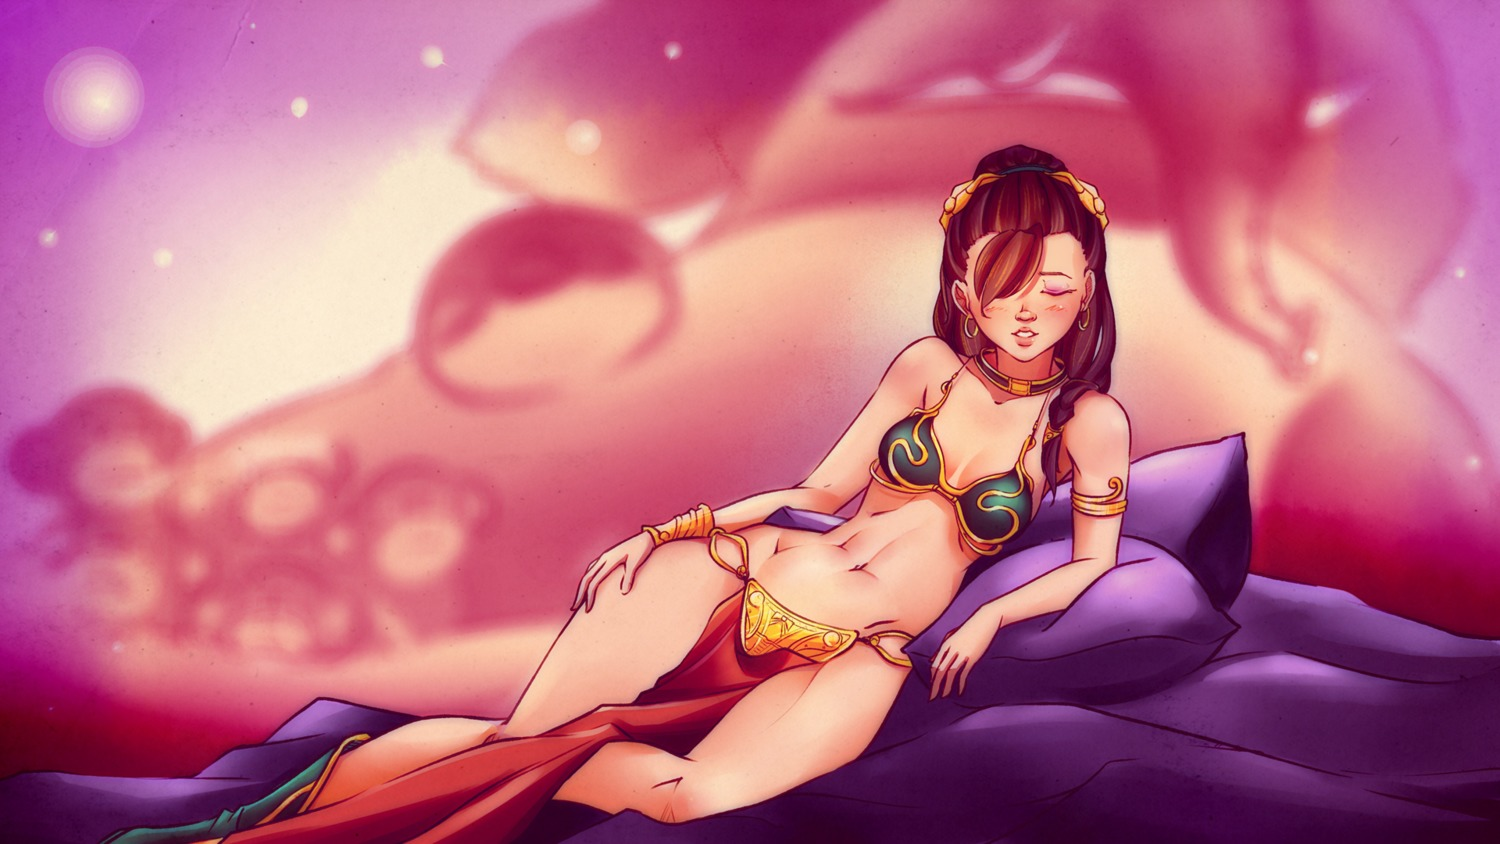 1girl armlet bikini bikini_top blush boots bracelet braid breasts brown_hair closed_eyes collar cosplay crossover earrings hair_over_one_eye highres idleantics_(artist) jewelry long_hair lying navel pillow ponytail princess_leia princess_leia_organa_solo solo star_wars the_monkeys_series wallpaper